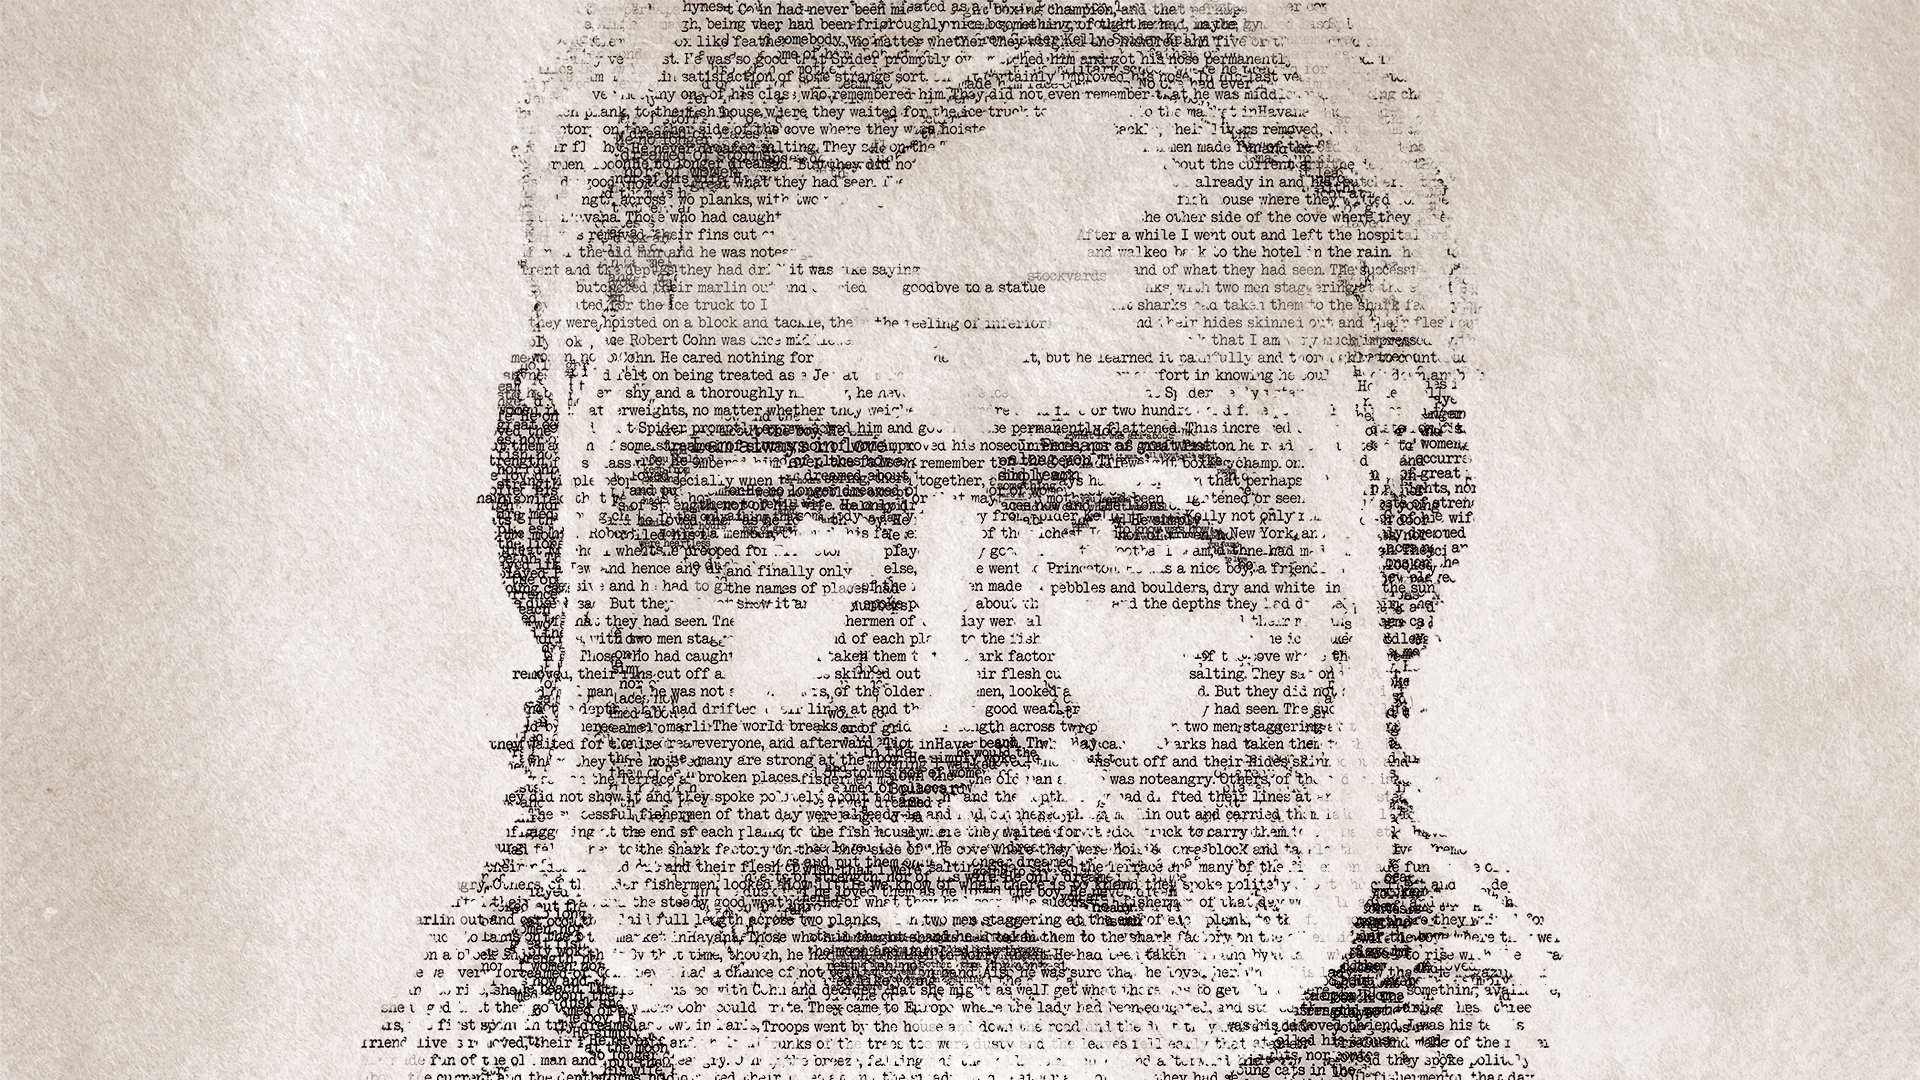 word cloud illustration of Hemingway